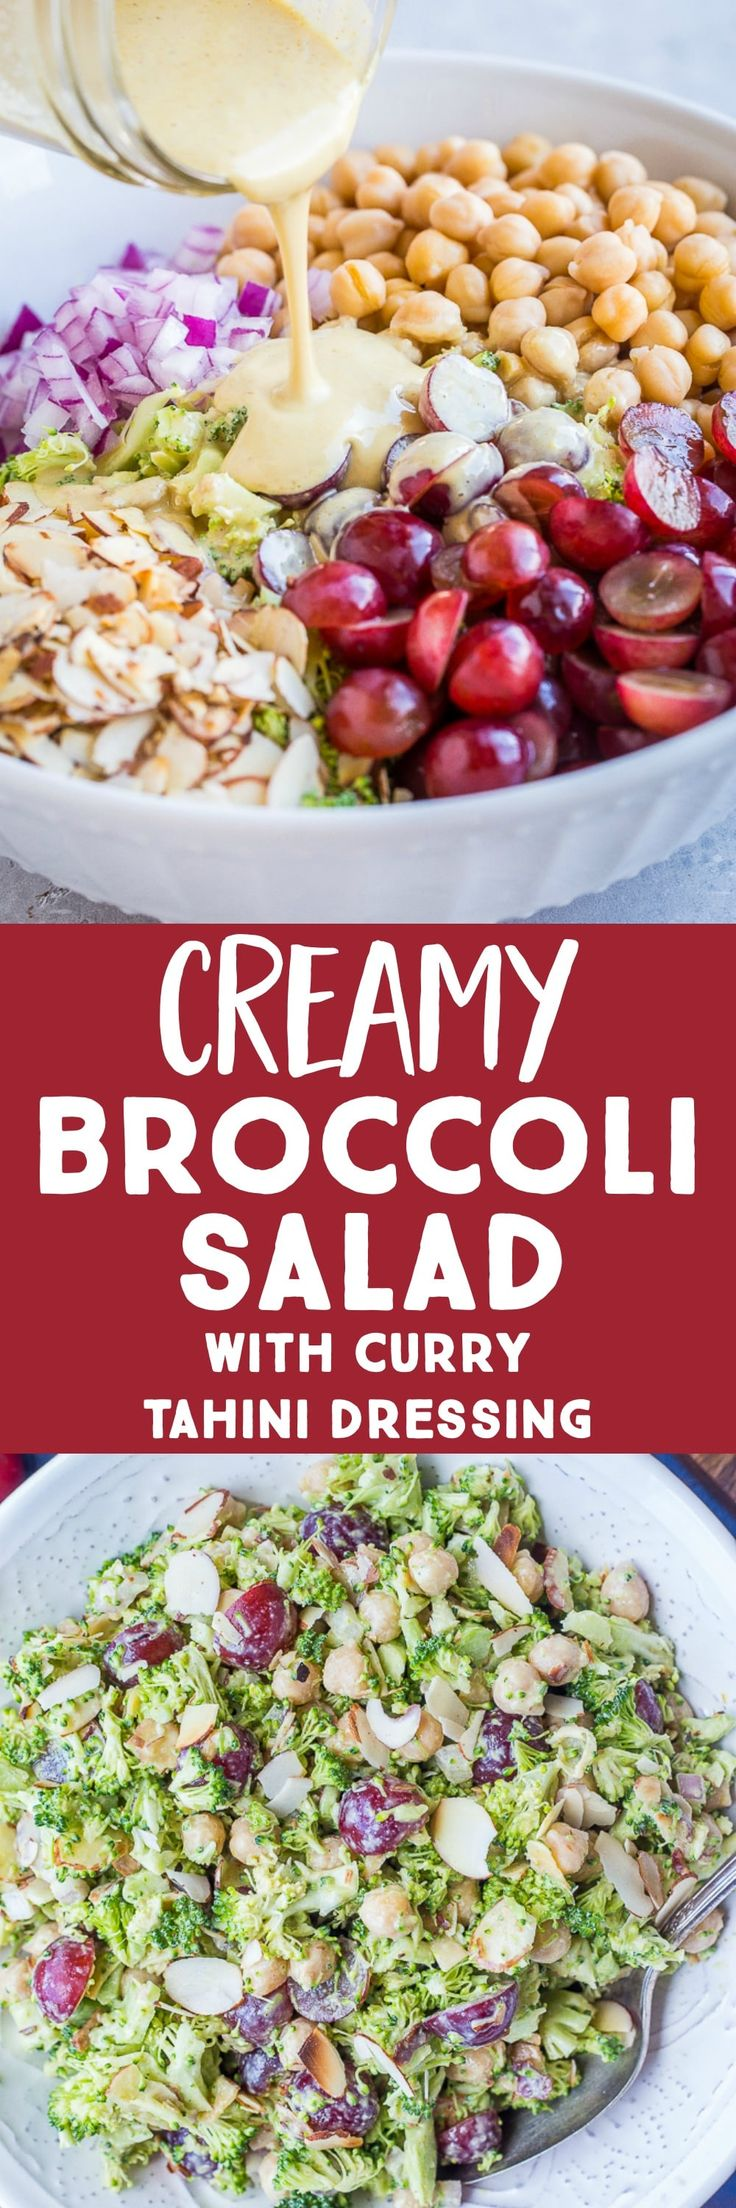 This Creamy Broccoli Salad with Curry Tahini Dressing is so flavorful and delici…